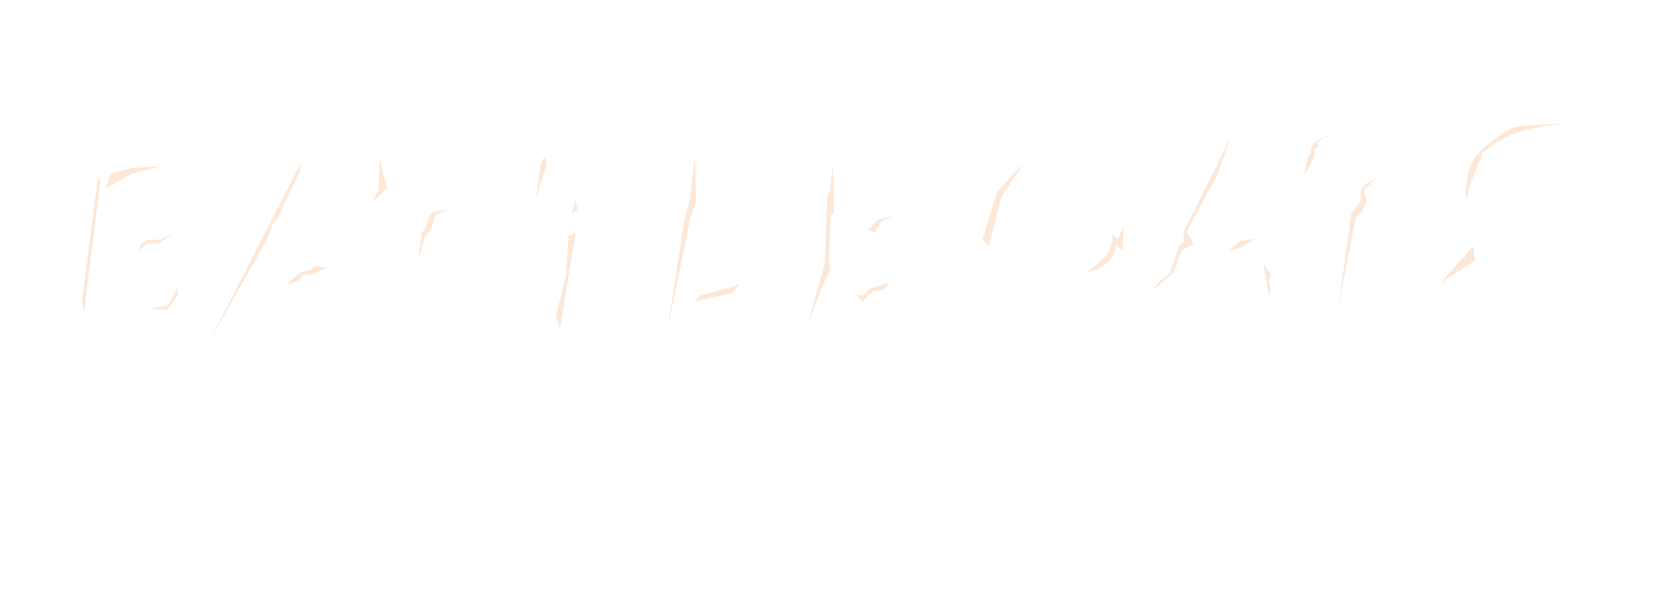 Battleoats logo